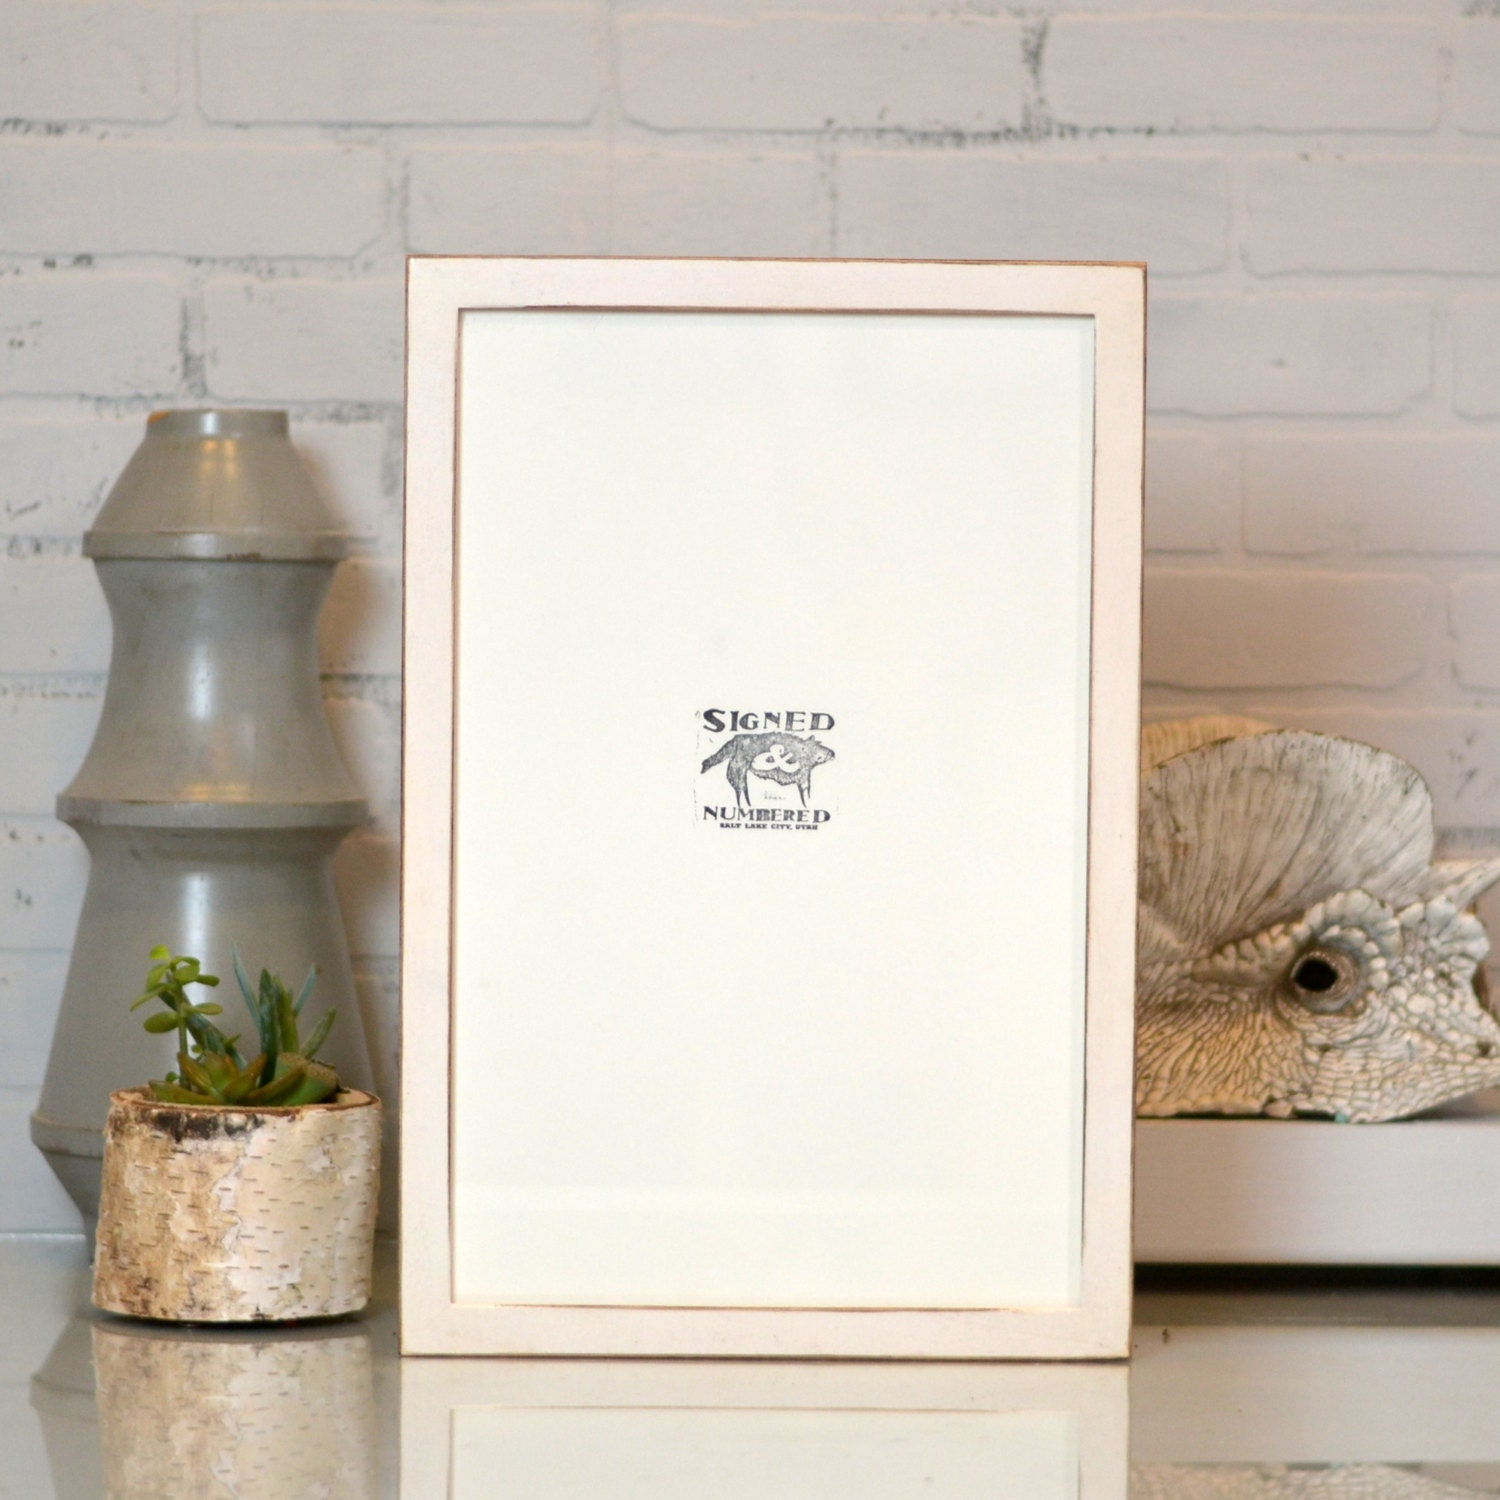 11x17 Picture Frame in 1x1 Flat Style with Vintage White Finish ...